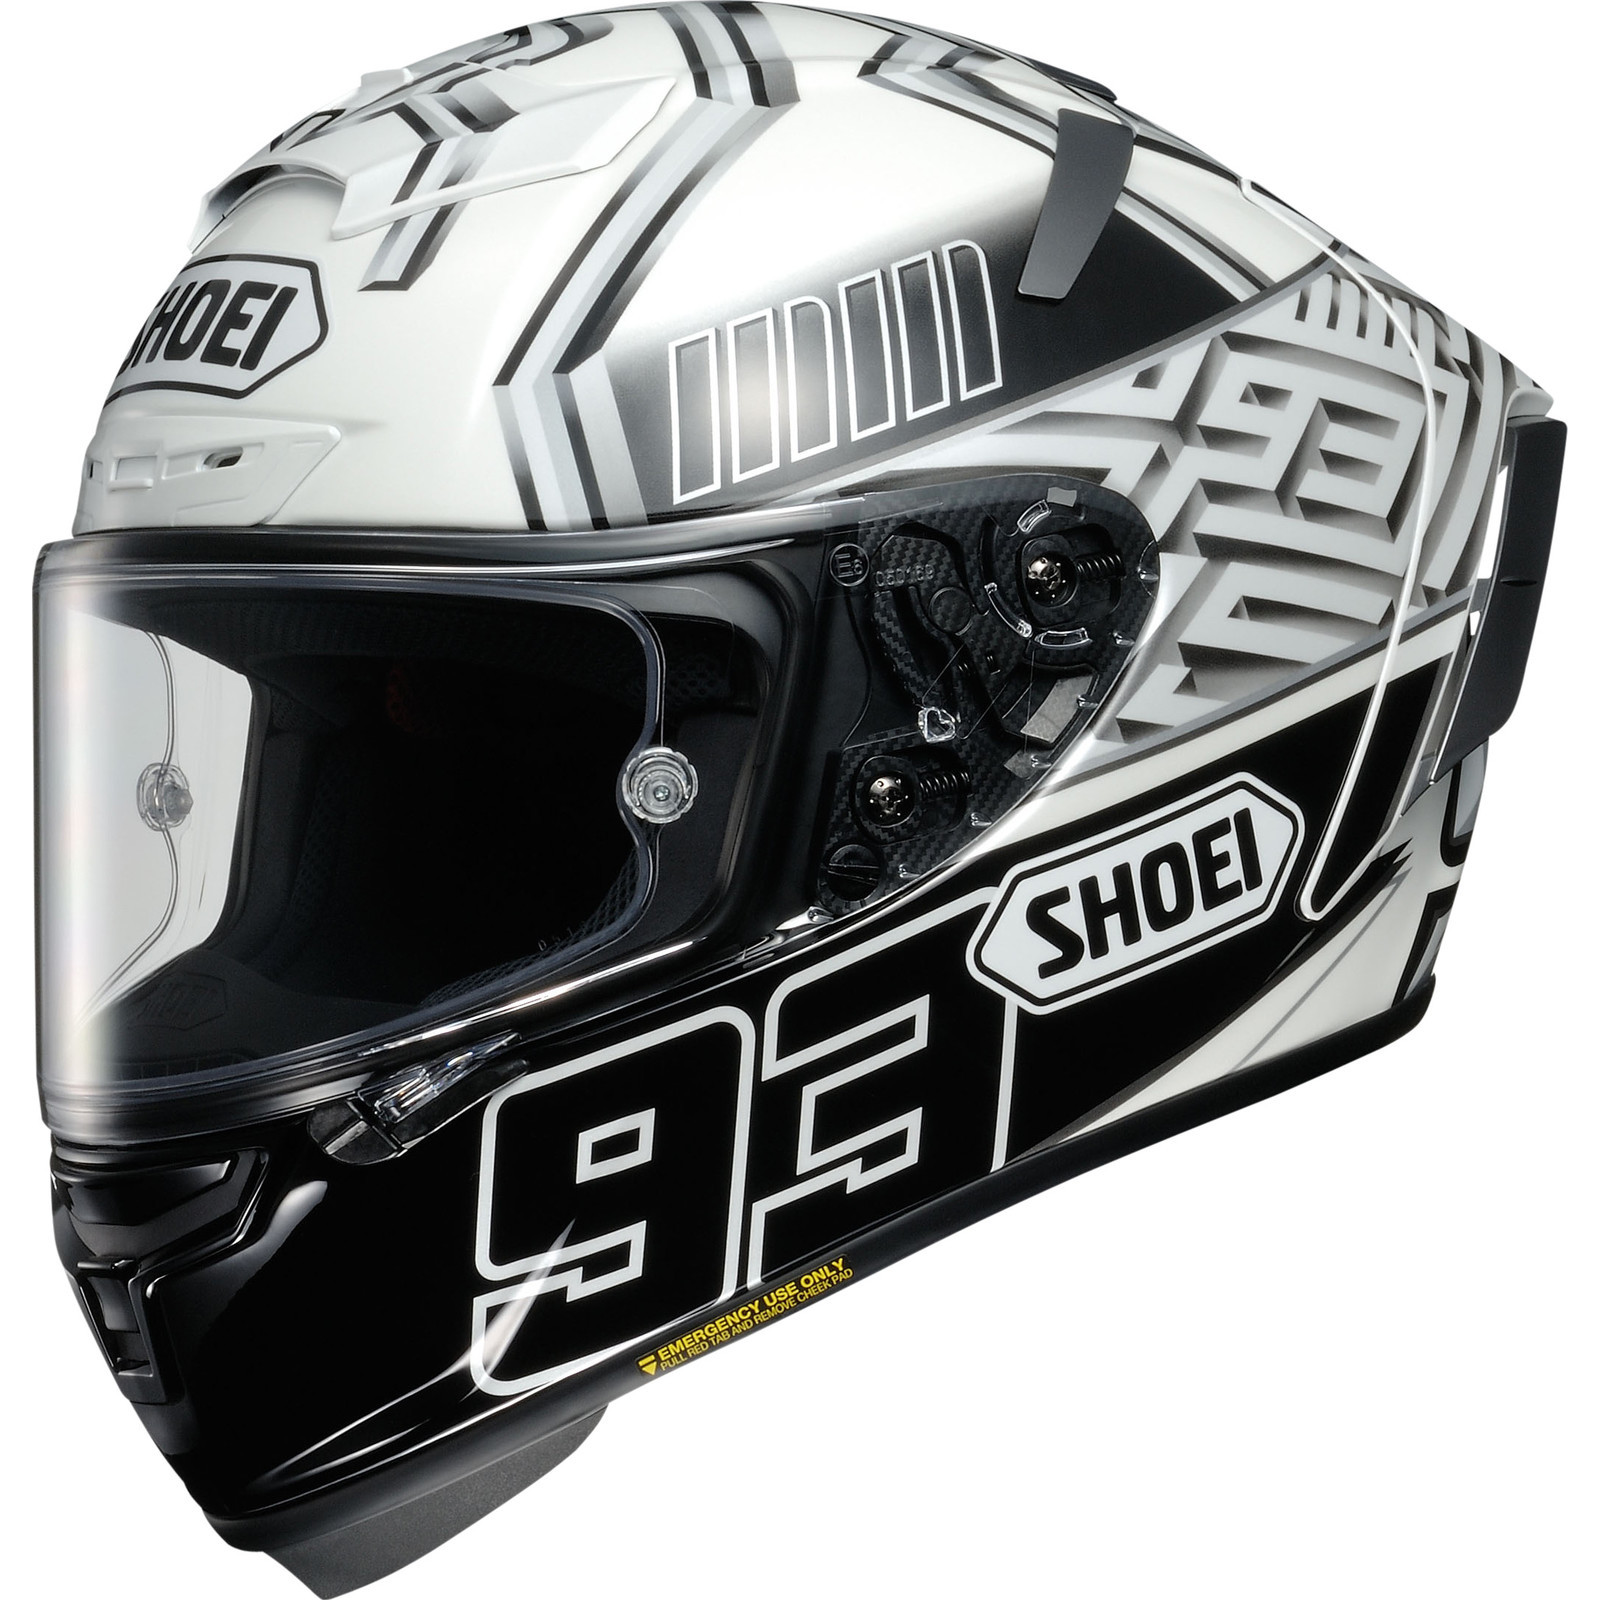 cd71c30e Details about Shoei X-Spirit 3 Marquez White Black Motorcycle Helmet TC-6  Motorbike Race Crash